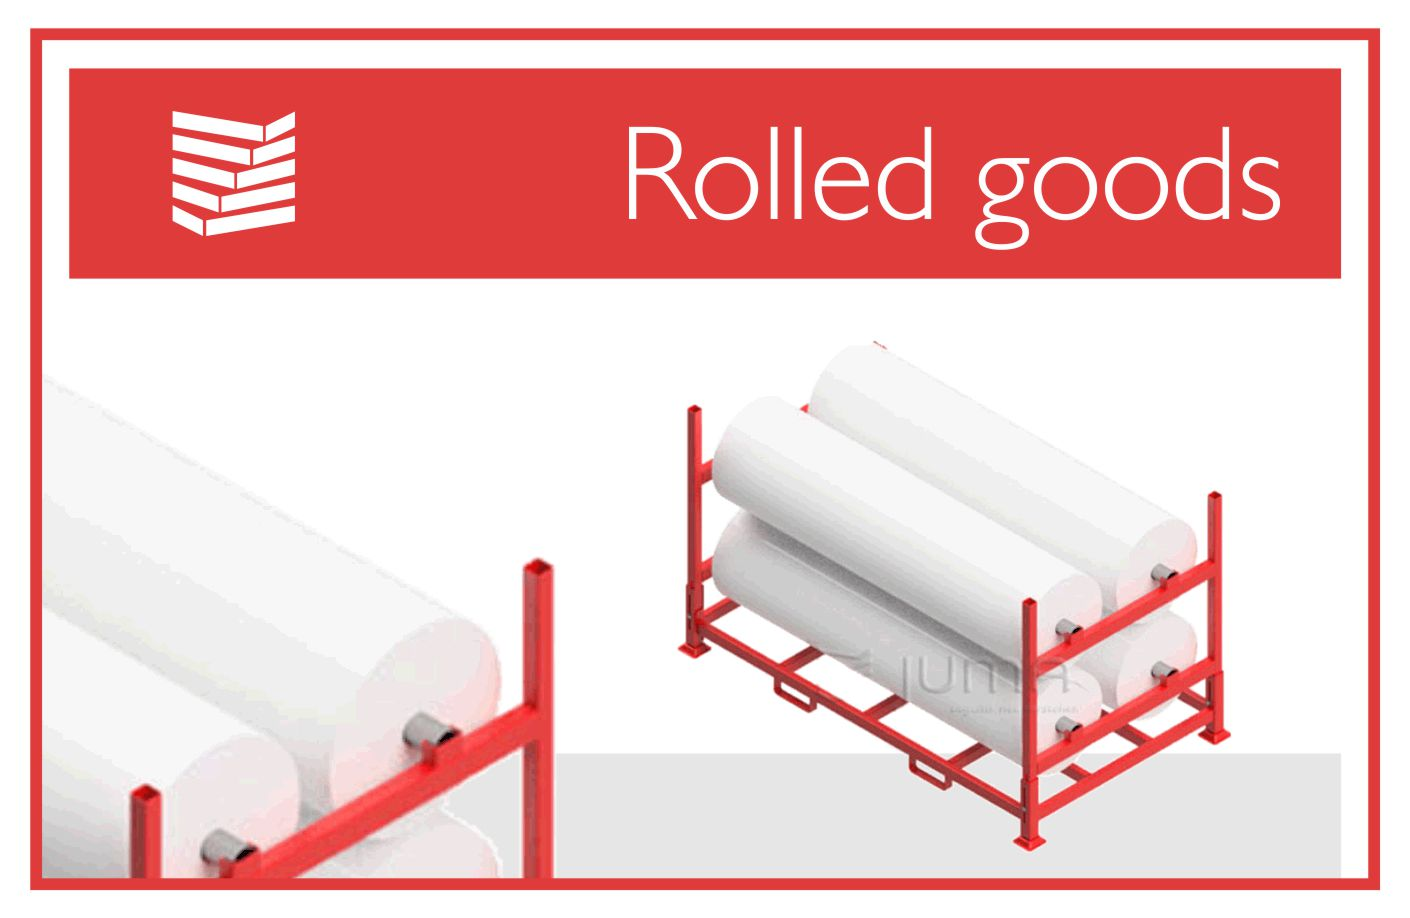 Rolled goods